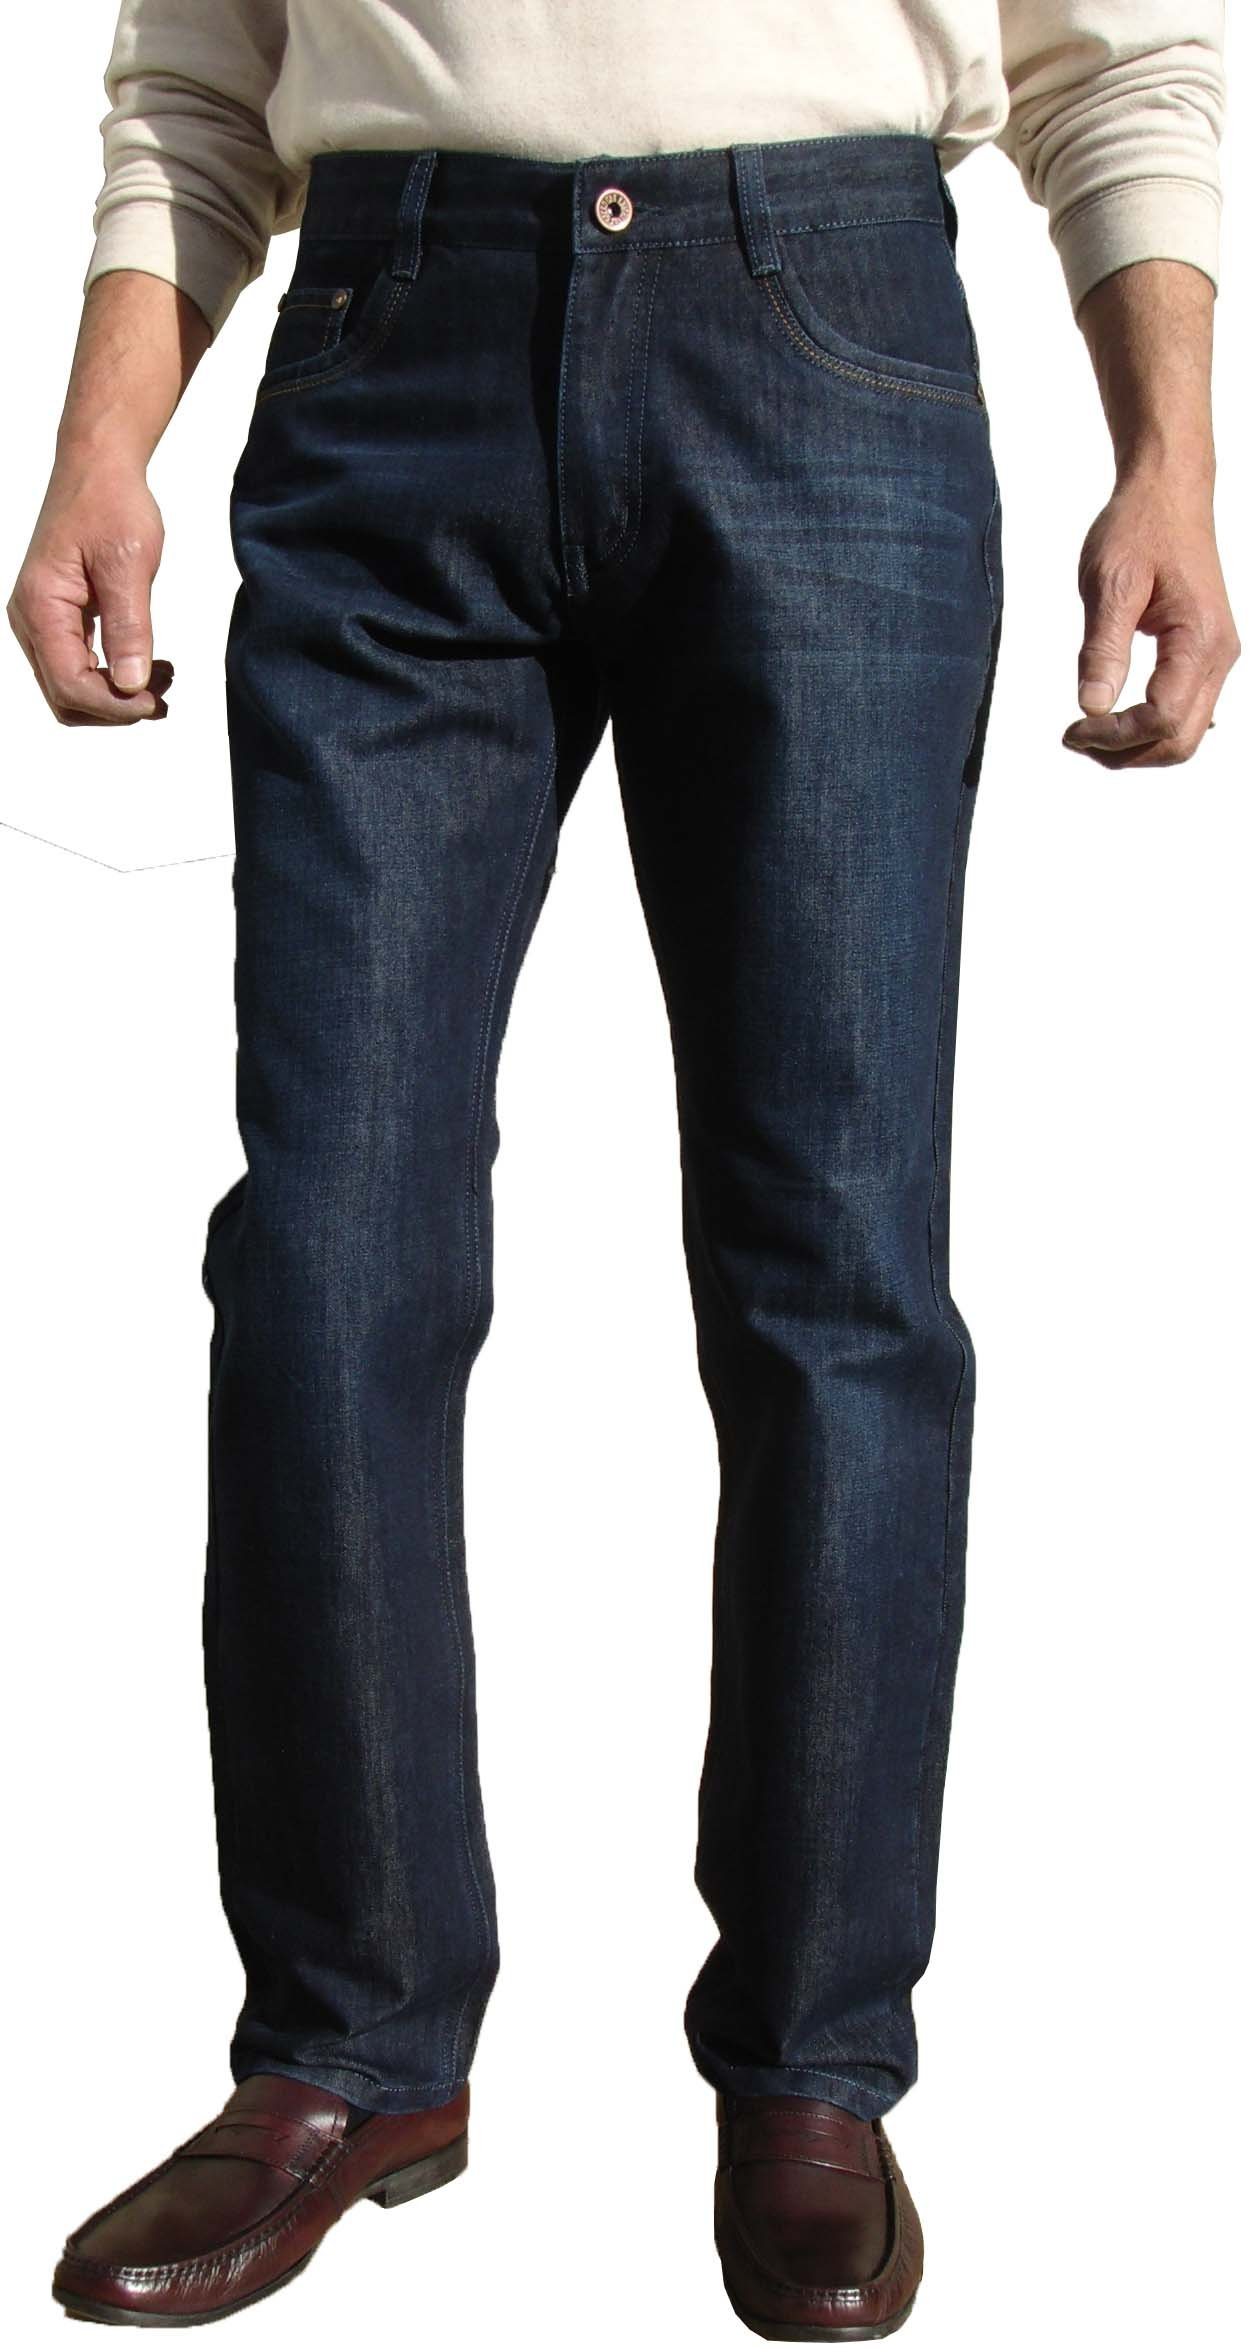 Men's straight Fit light Blue Color Washed Casual Jean Pants #1524-sdsu-32m